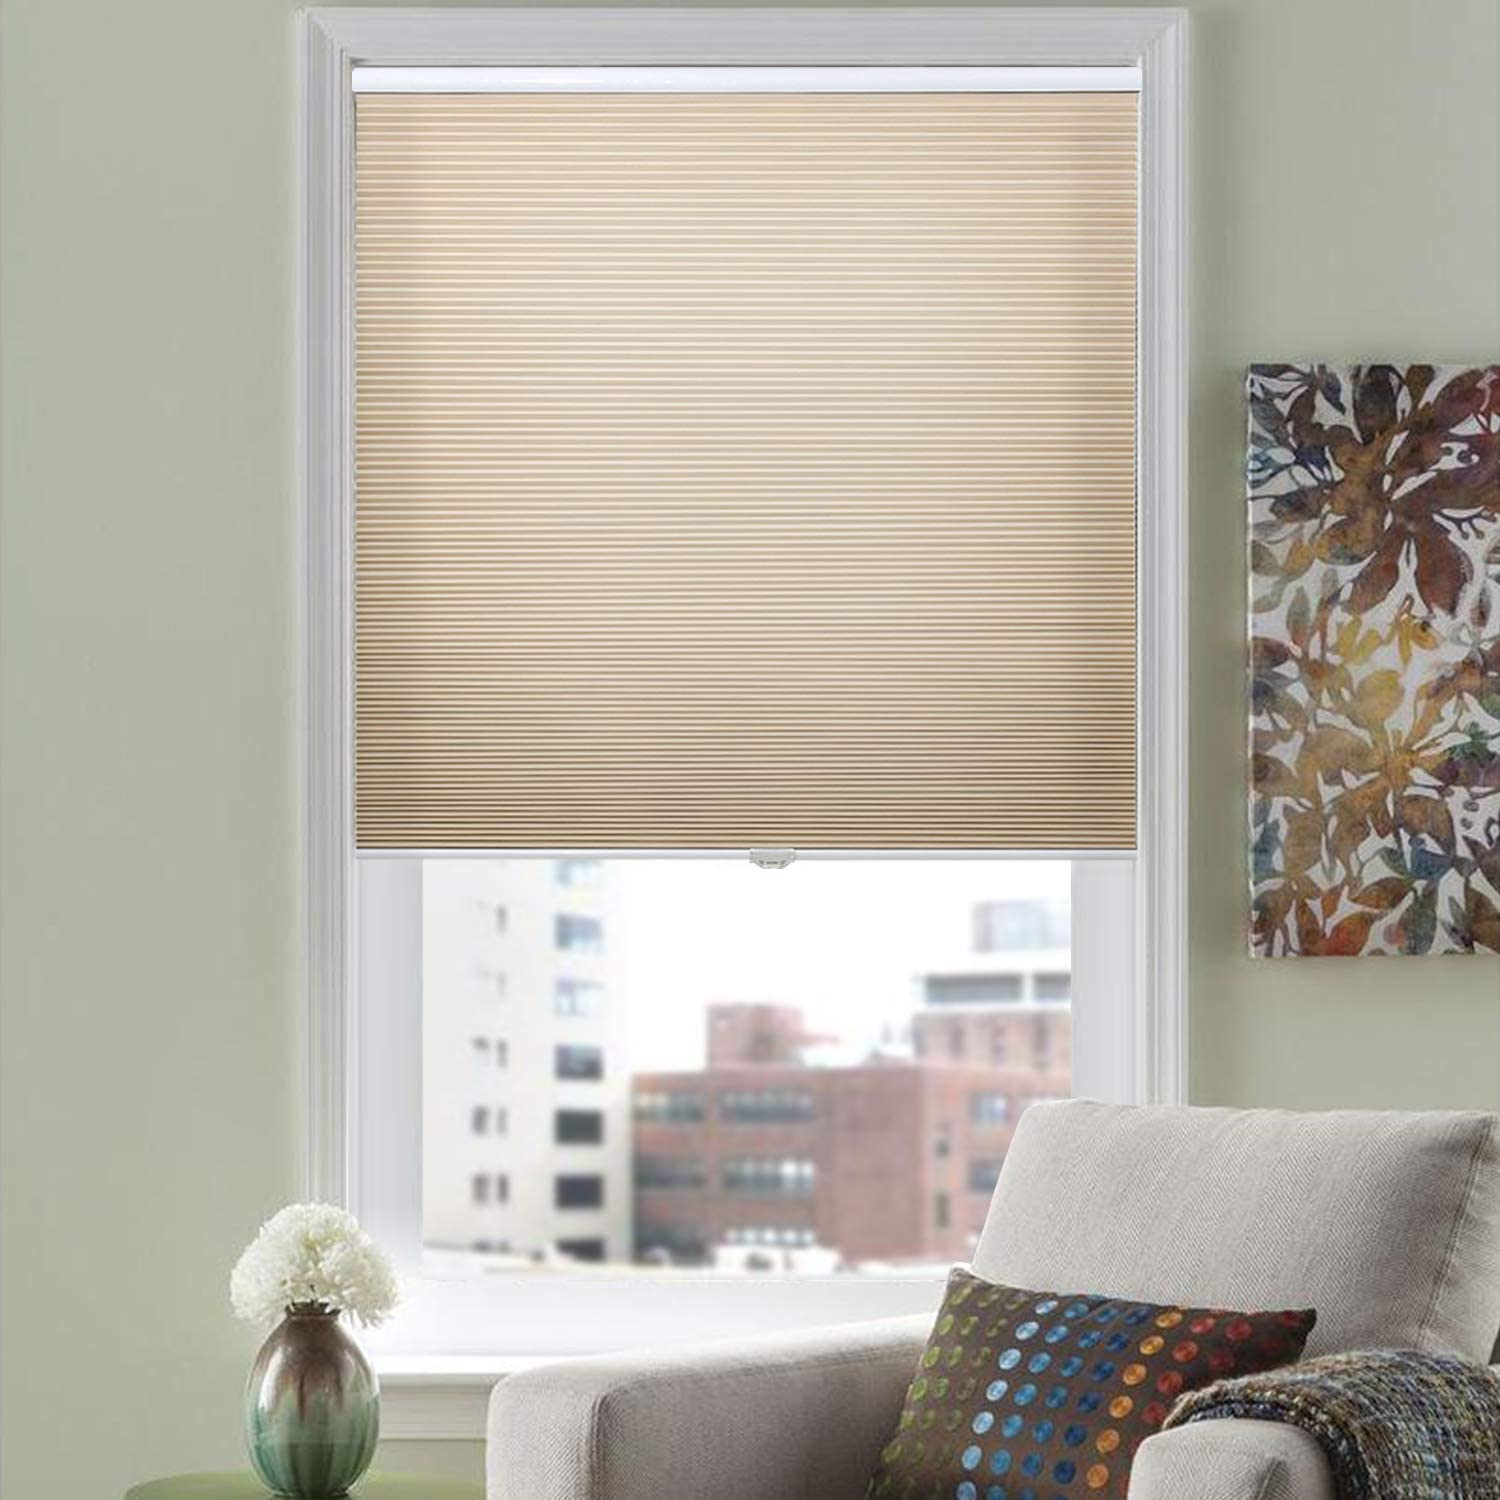 HOMEDEMO Cellular Shades Cordless Window Blinds and Light Filtering Shades, 29